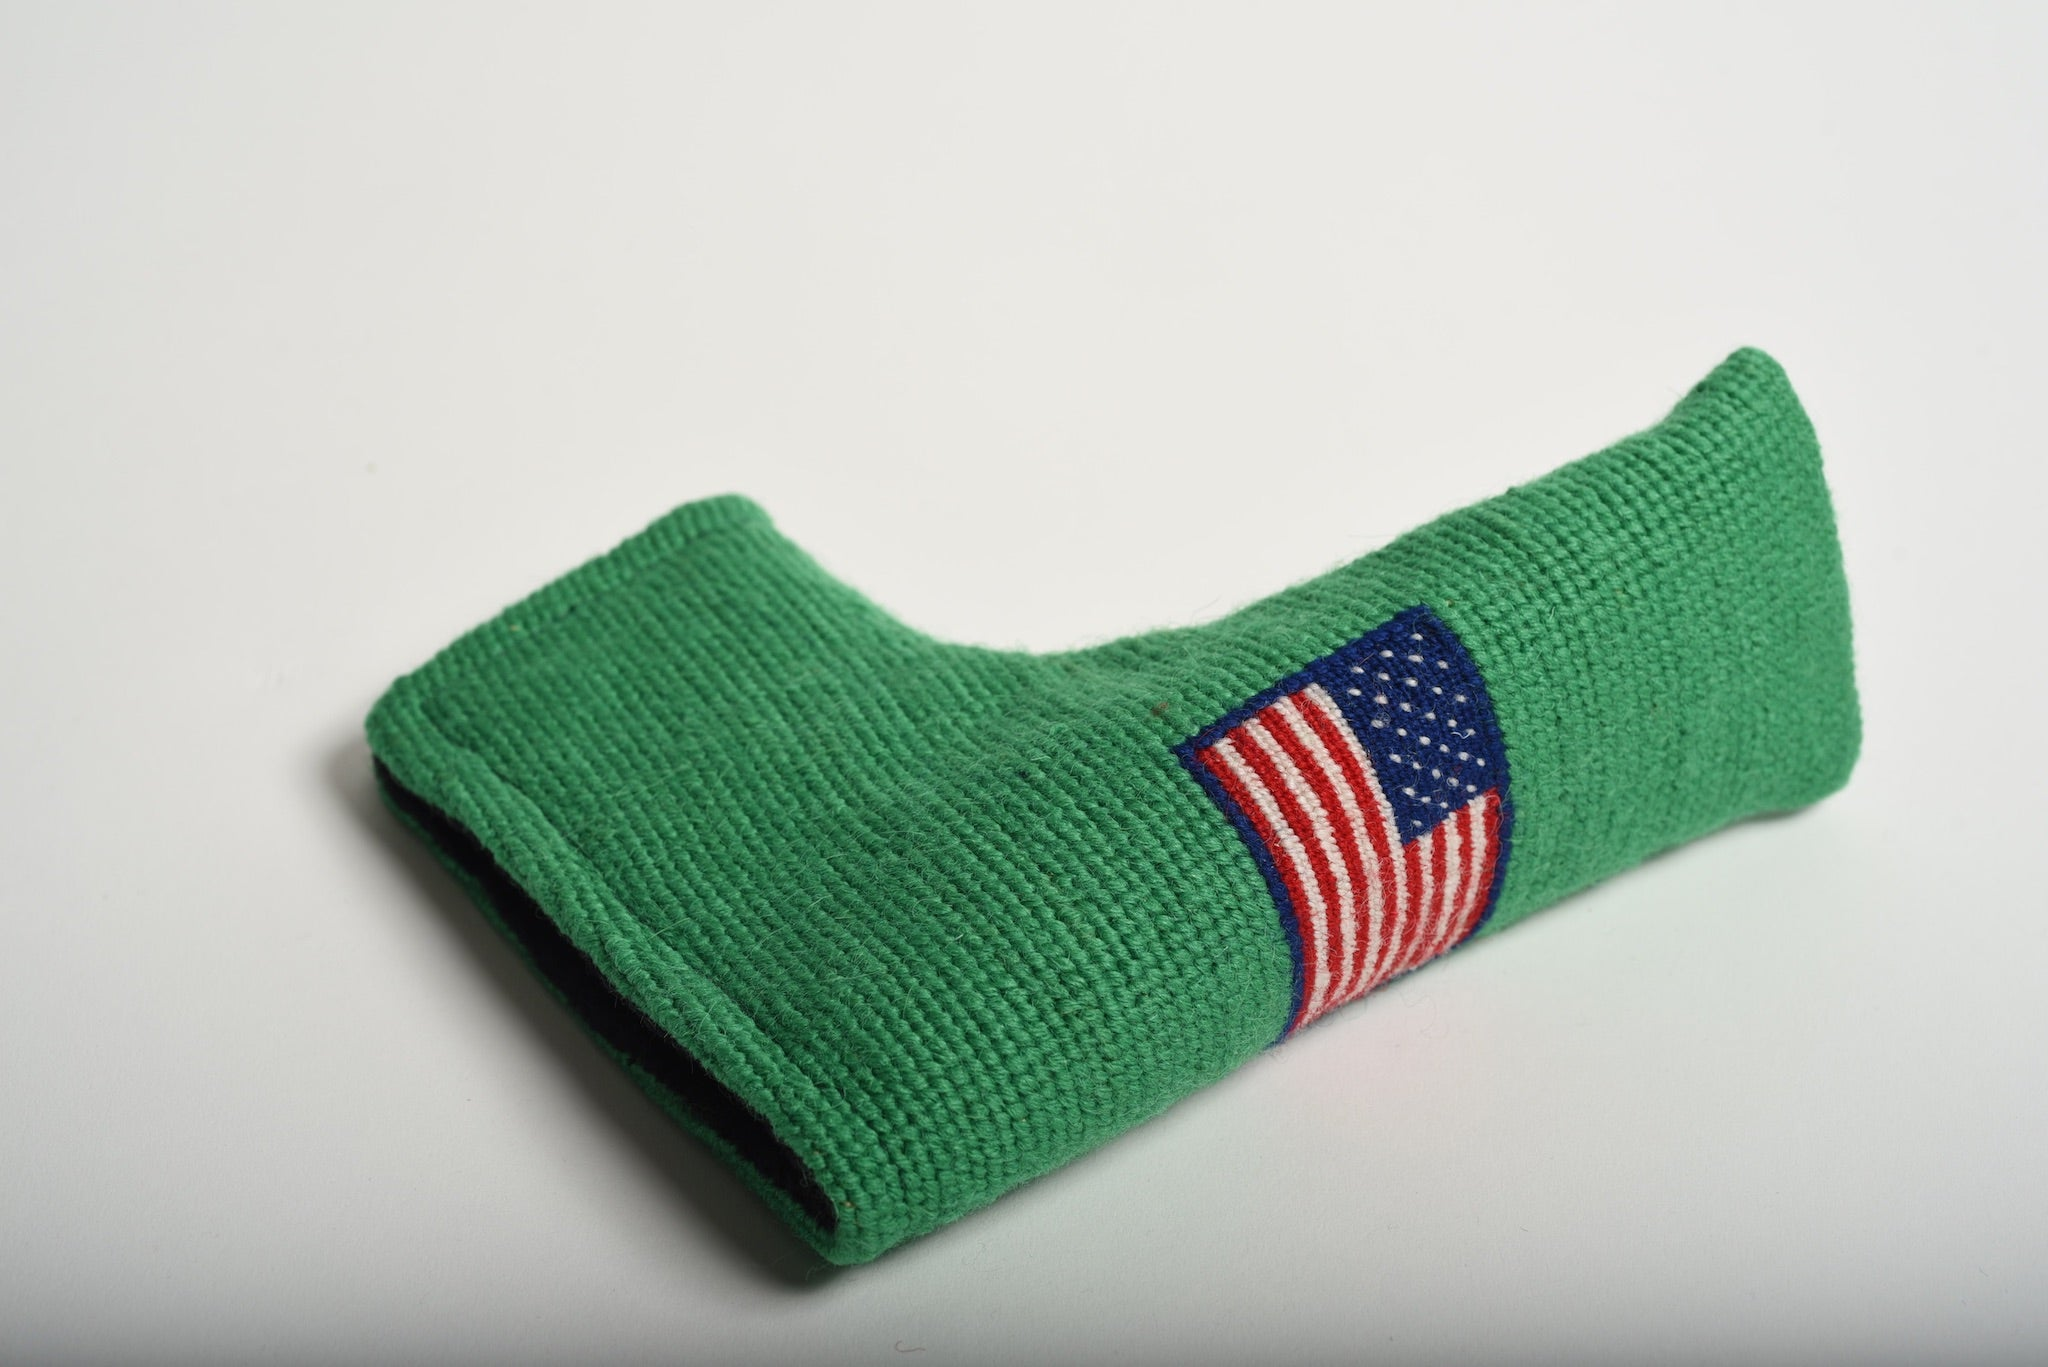 American Flag Kelly Green Needlepoint Putter Headcover